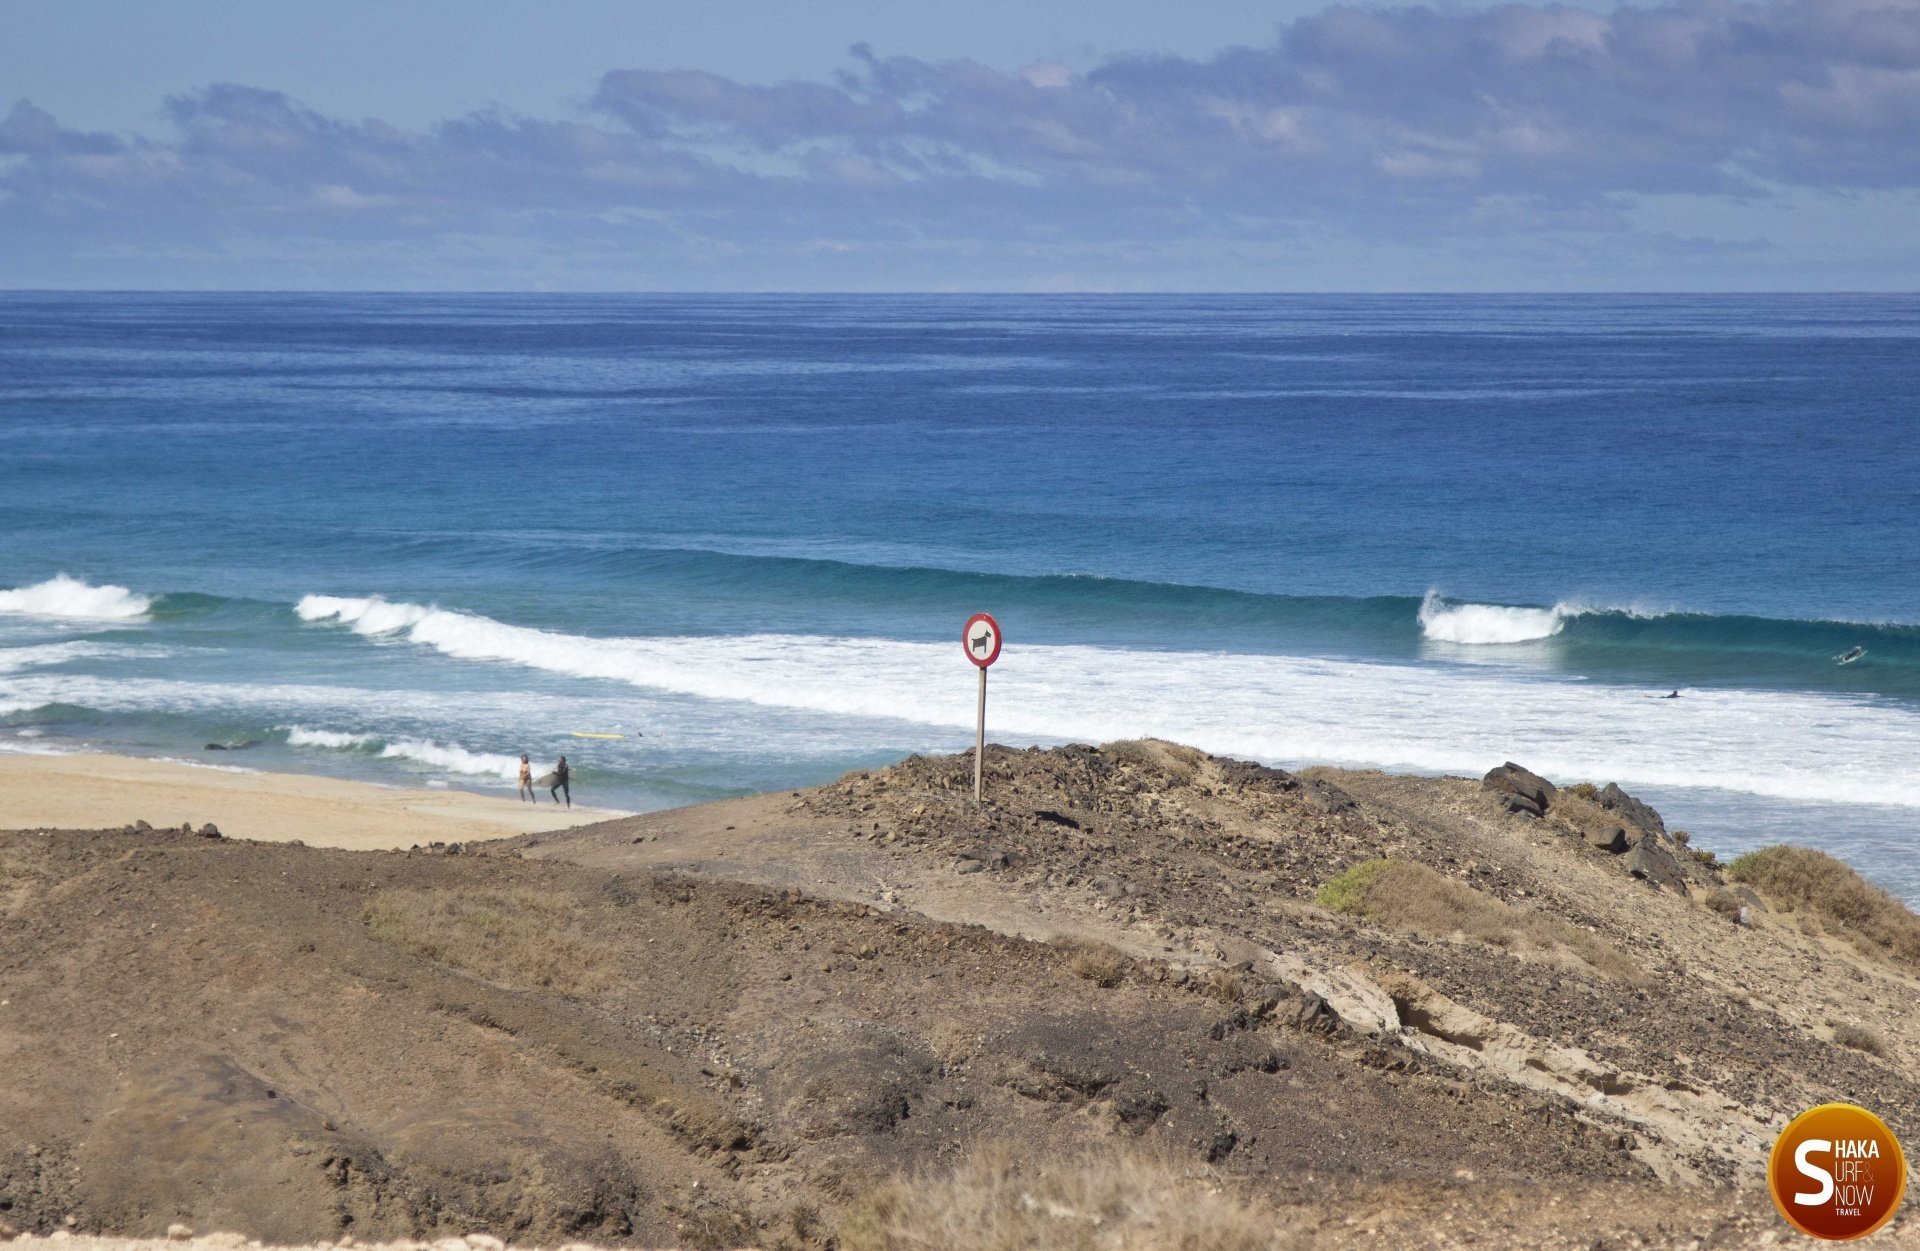 miso's photo of Cotillo